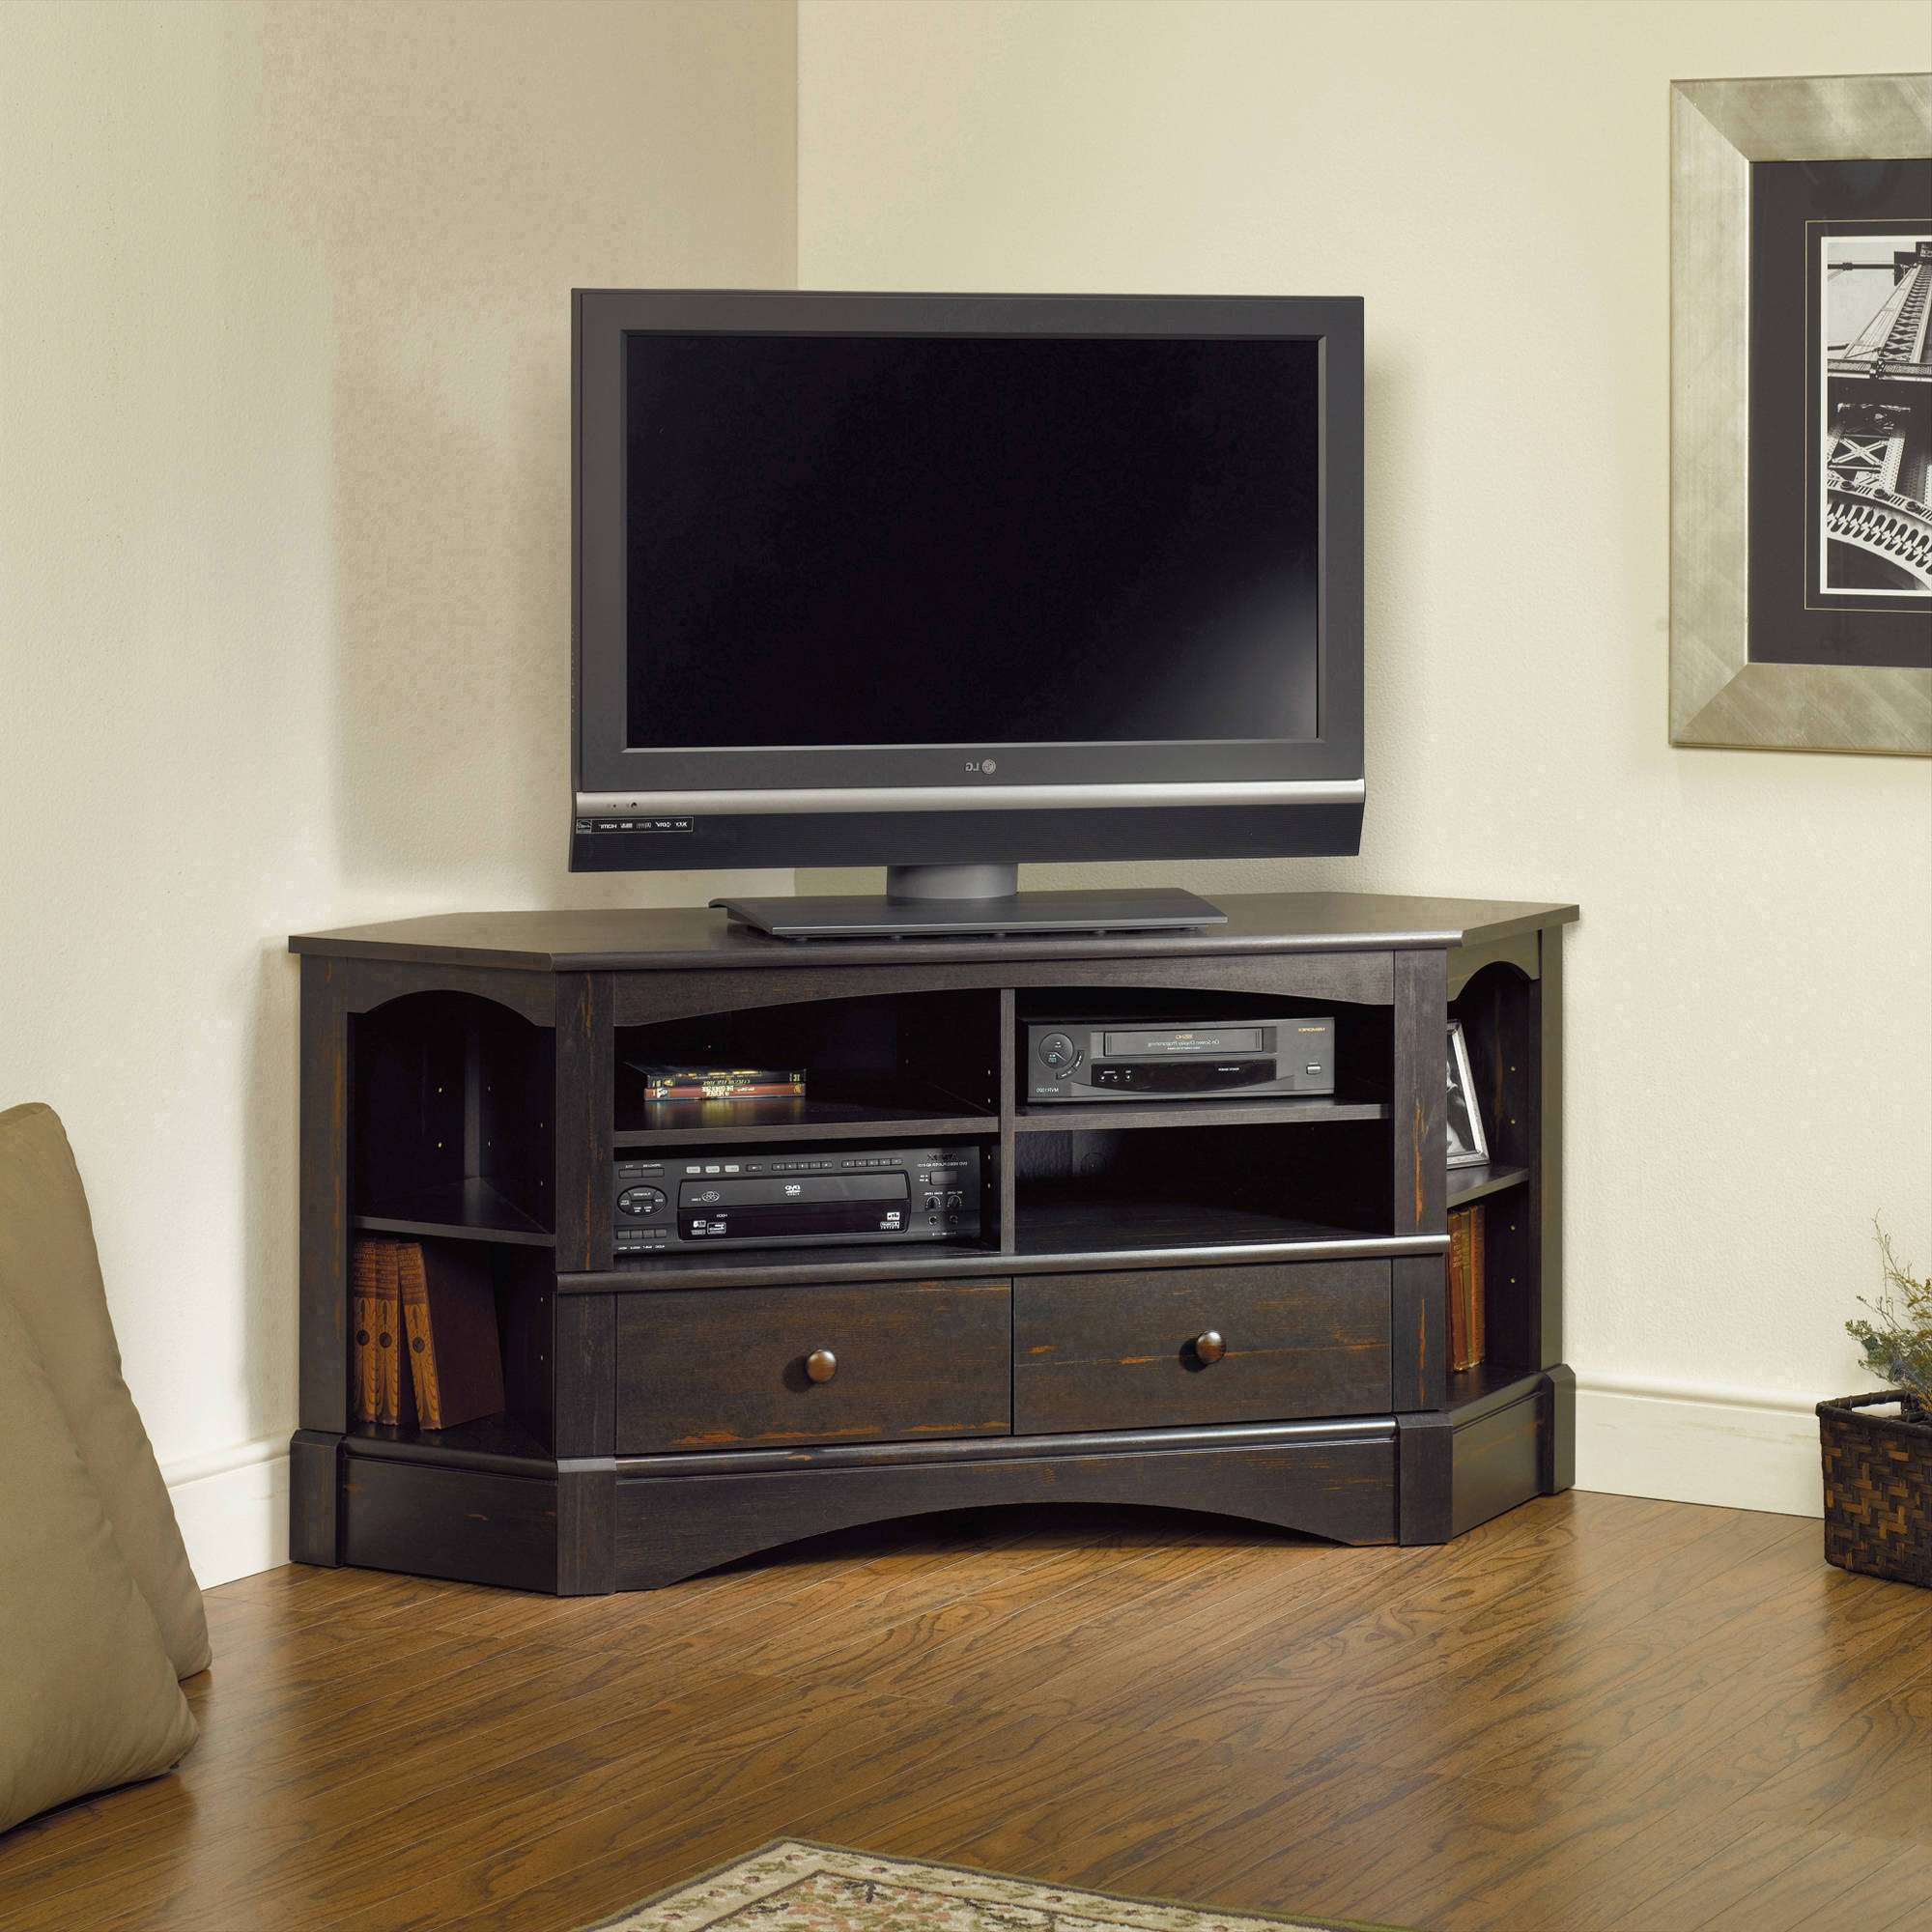 Tv Stand : 32 Unusual 55 Inch Corner Tv Stand With Mount Images In 32 Inch Corner Tv Stands (View 14 of 15)